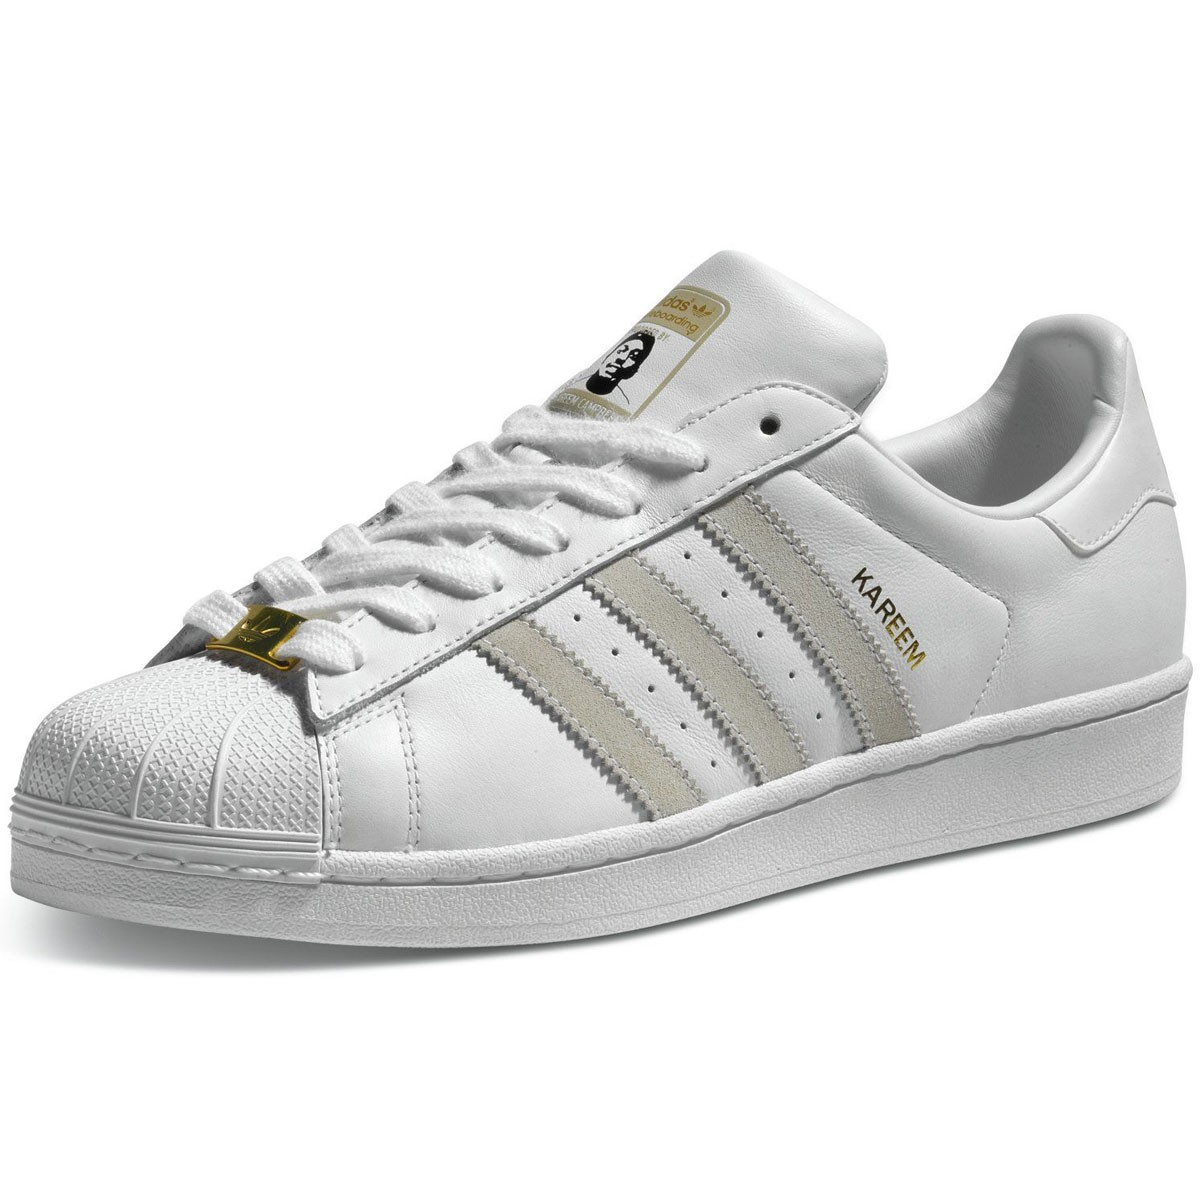 Adidas Superstar RT Shoes - White/White/White